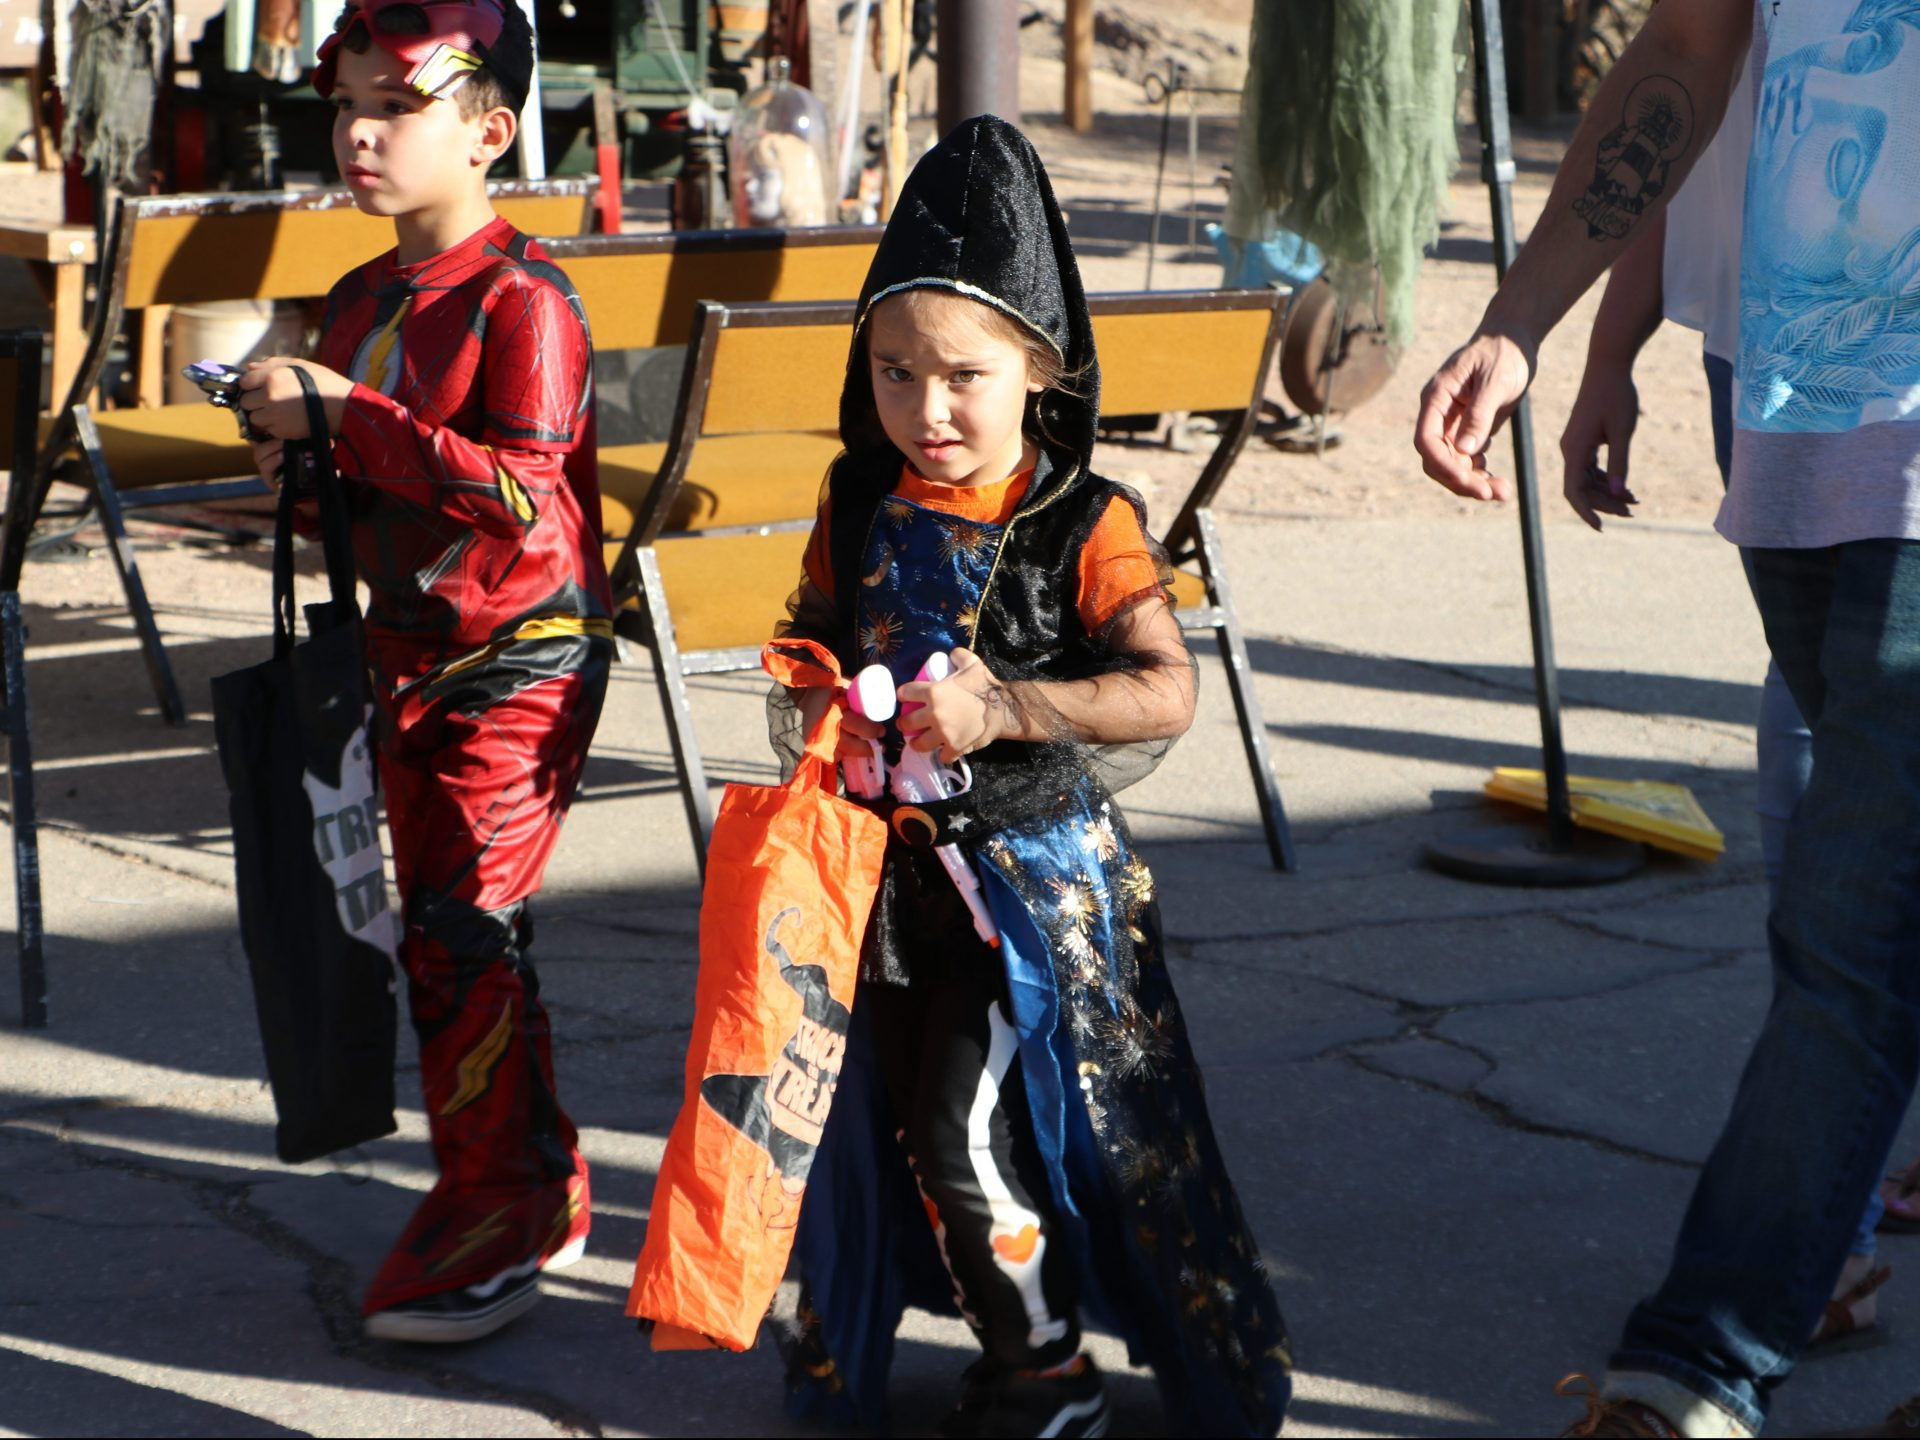 Kids in Costumes for Halloween at Calico